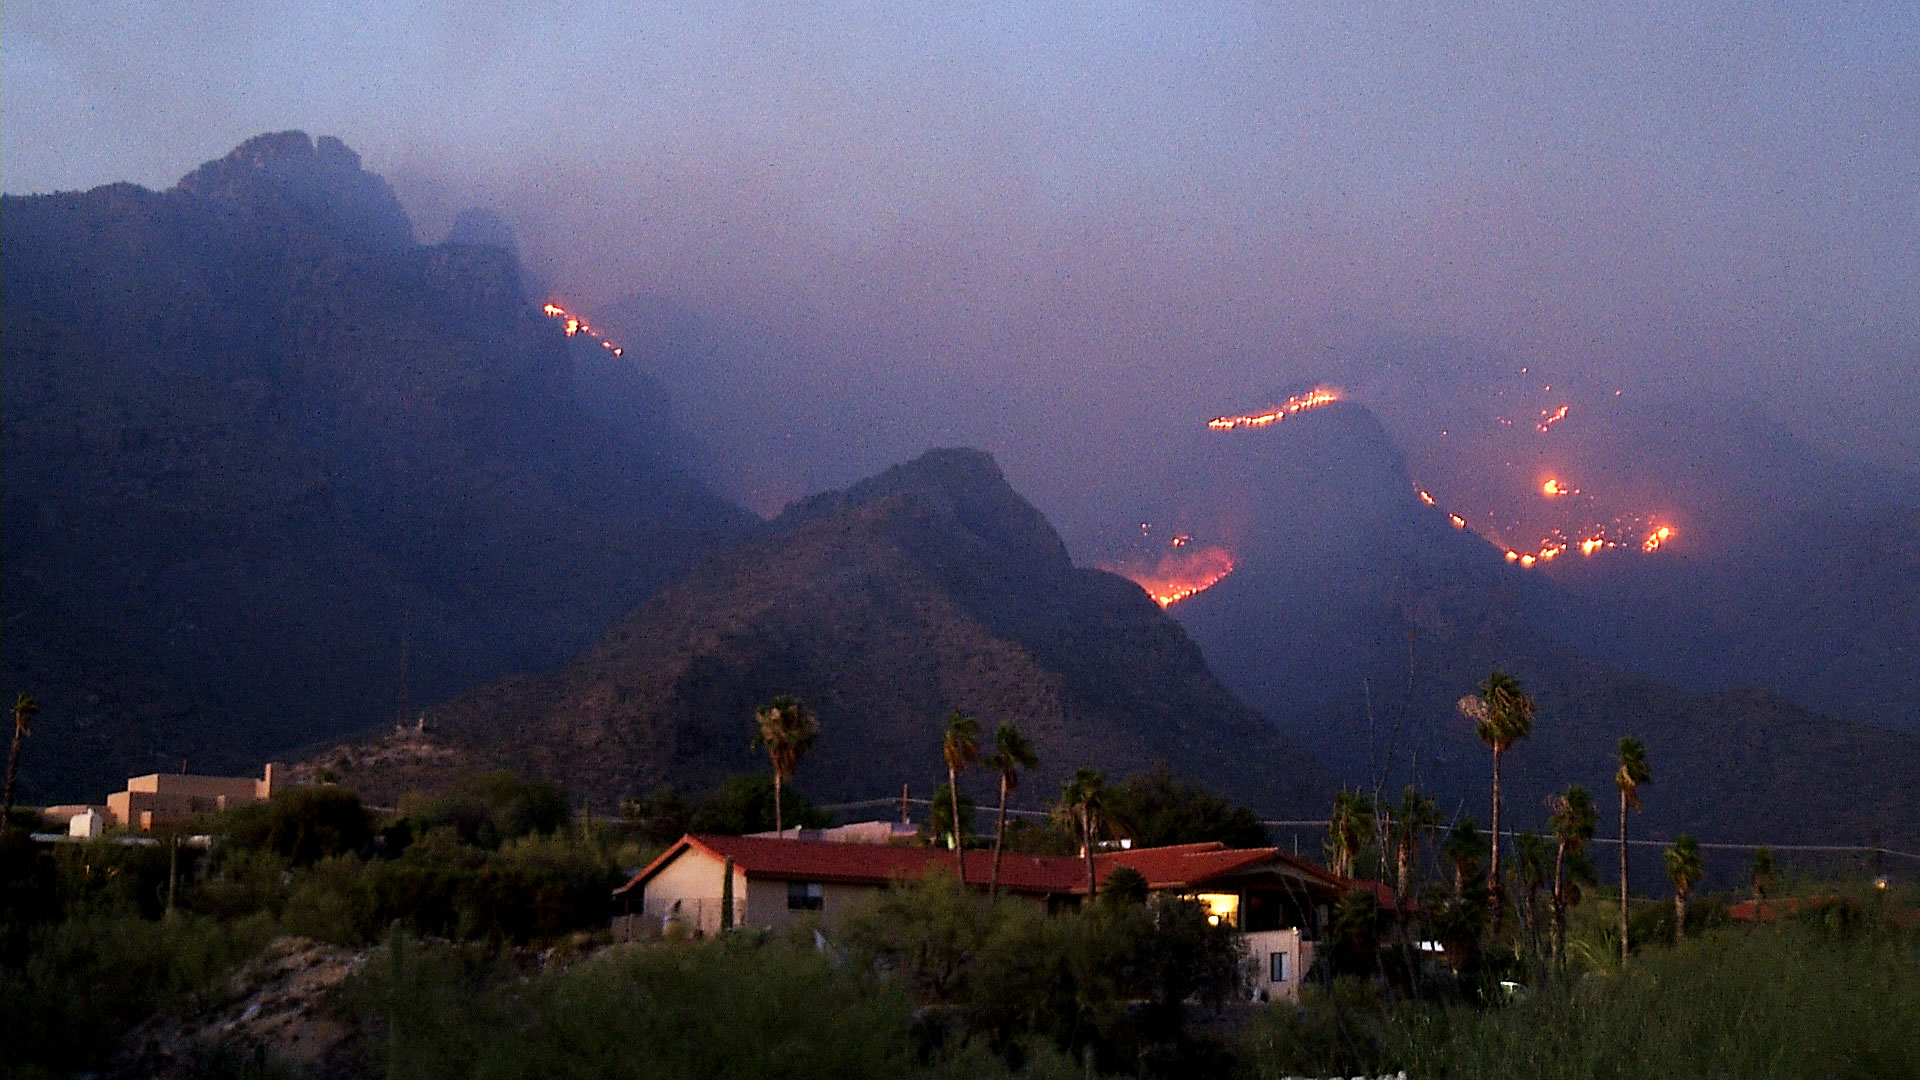 With residences in the foreground, the Bighorn Fire burns in the Santa Catalina Mountains on June 10, 2020.